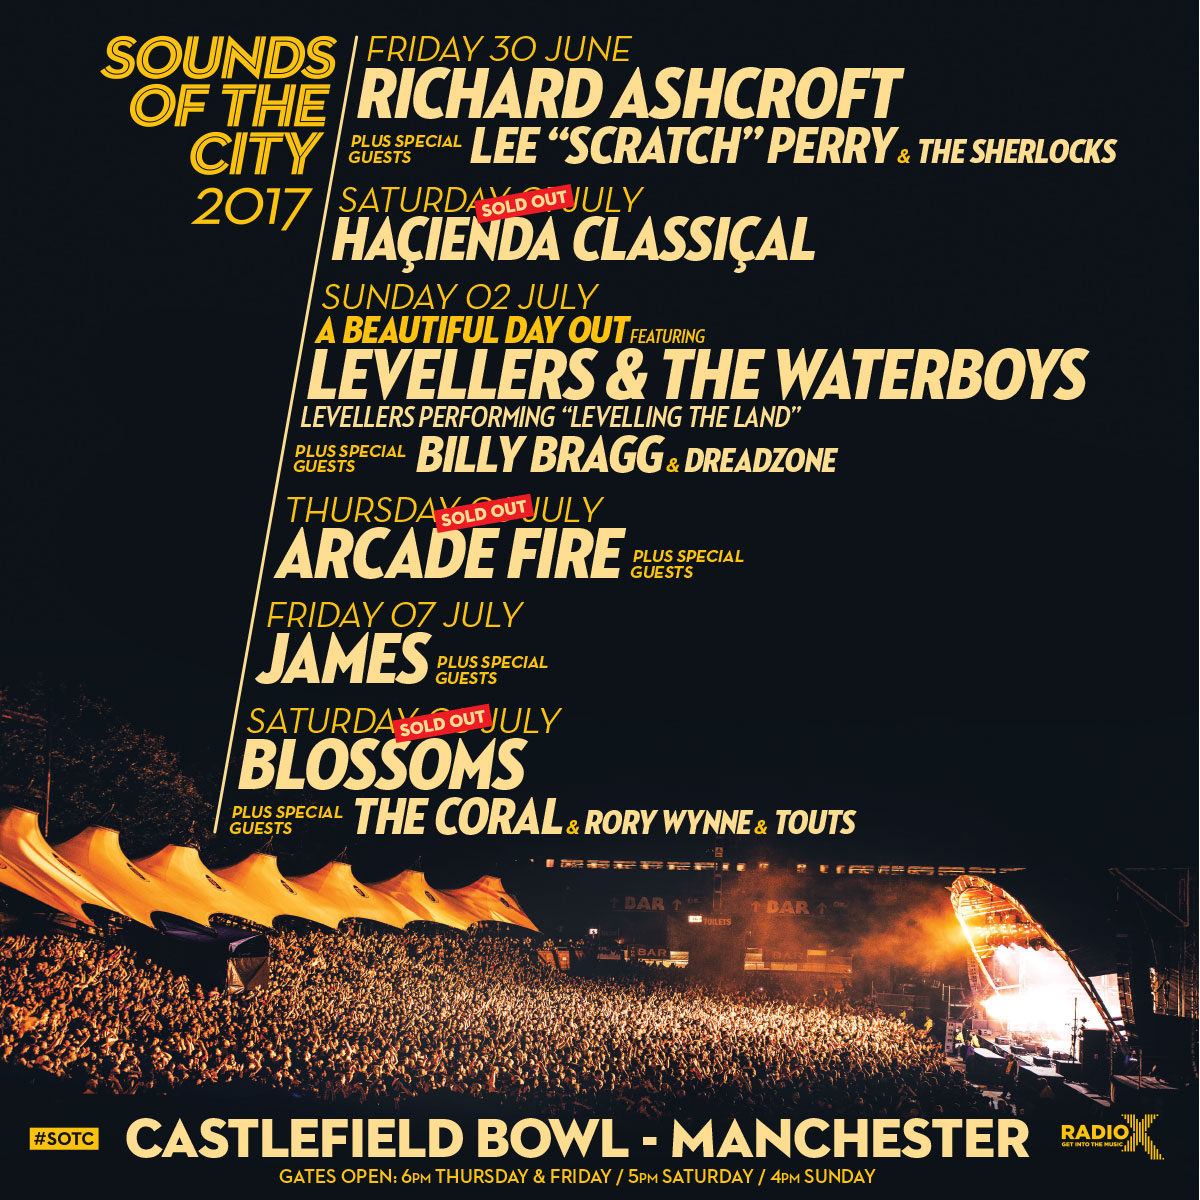 Sounds of the City 2017 Richard Ashcroft support